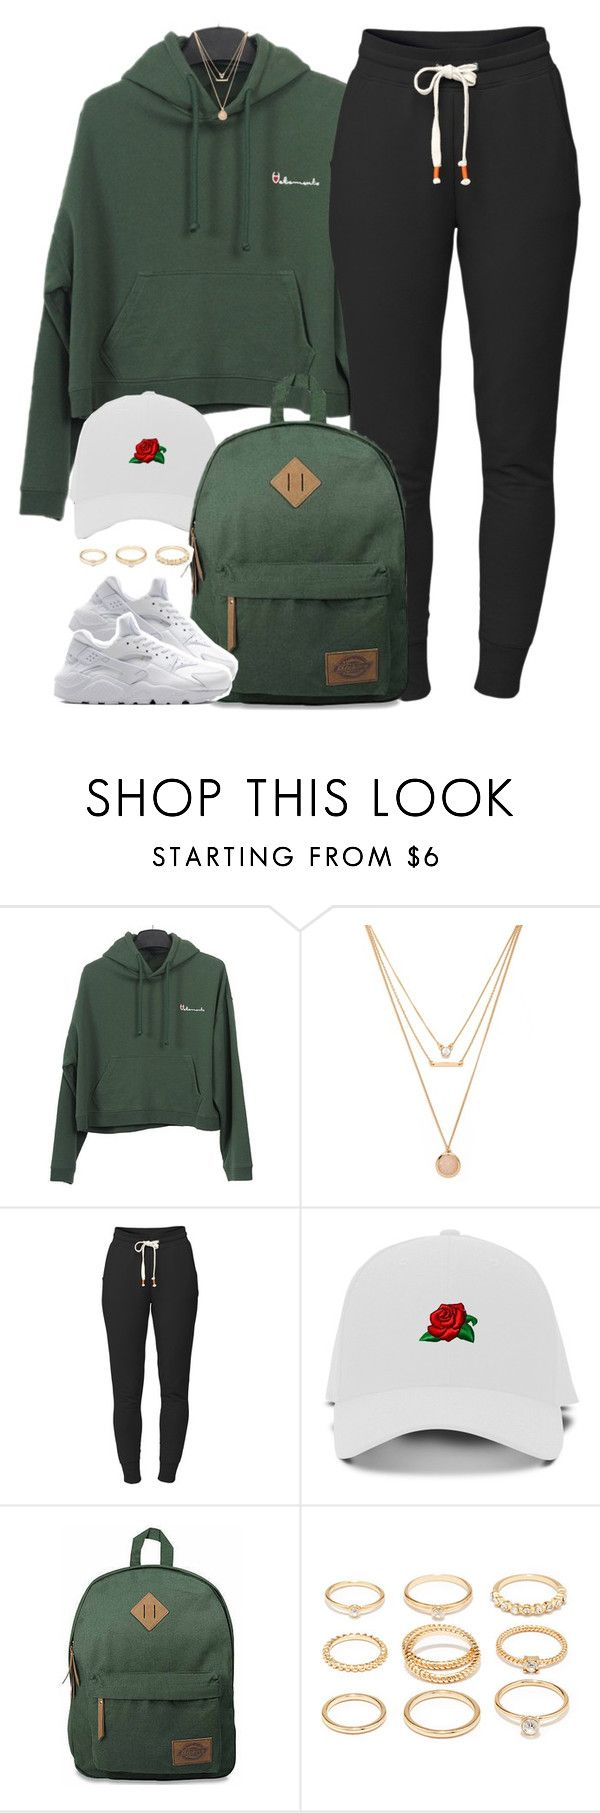 """""""1 3 7 8 • champion x nike"""" by cheerstostyle ❤ liked on Polyvore featuring Forever 21, Lija, Dickies and NIKE"""